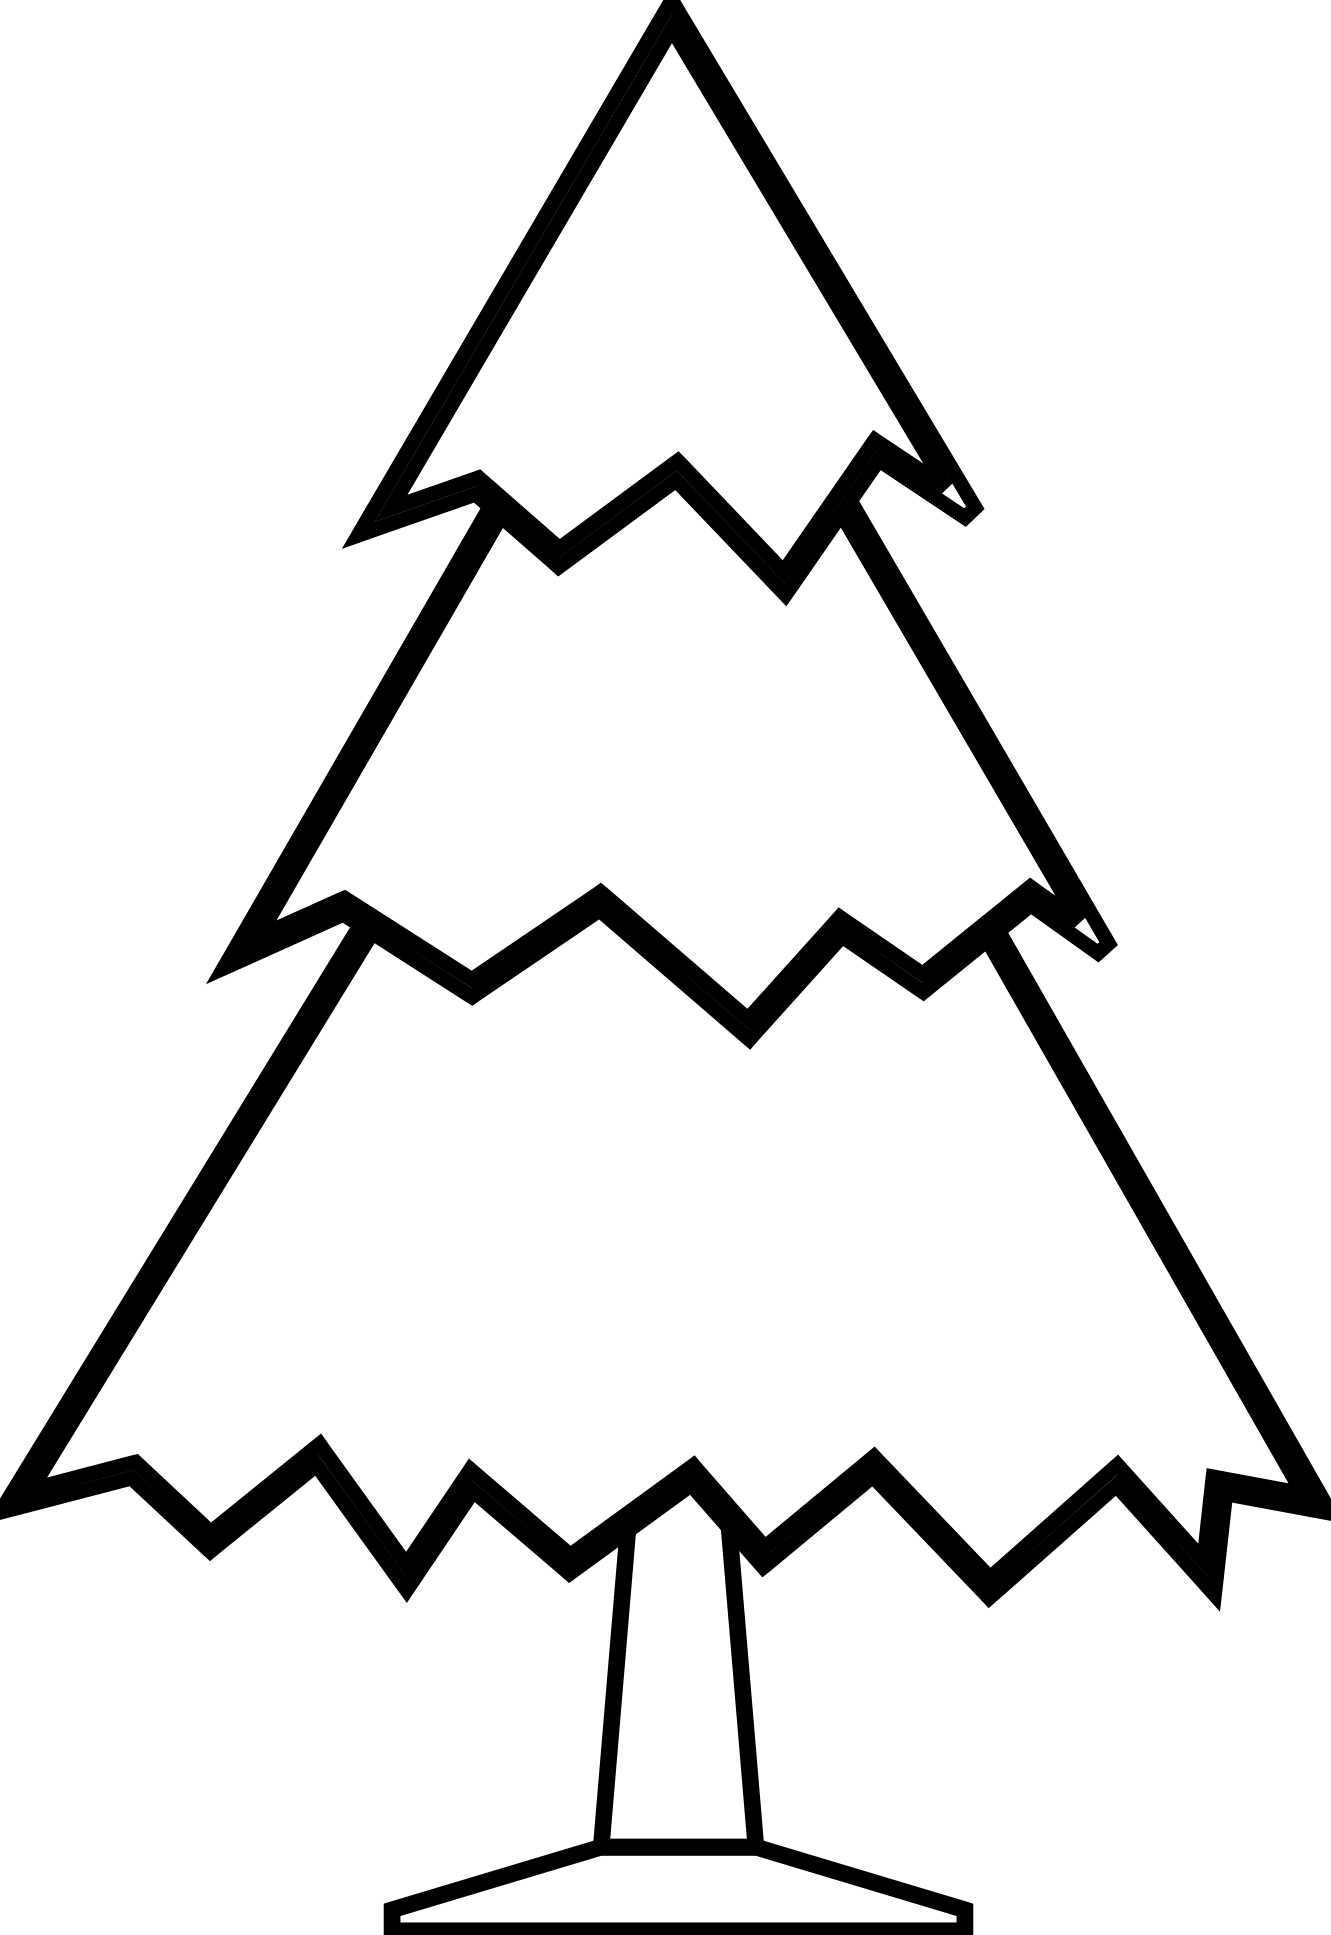 Christmas tree  black and white christmas tree clipart black and white free 5